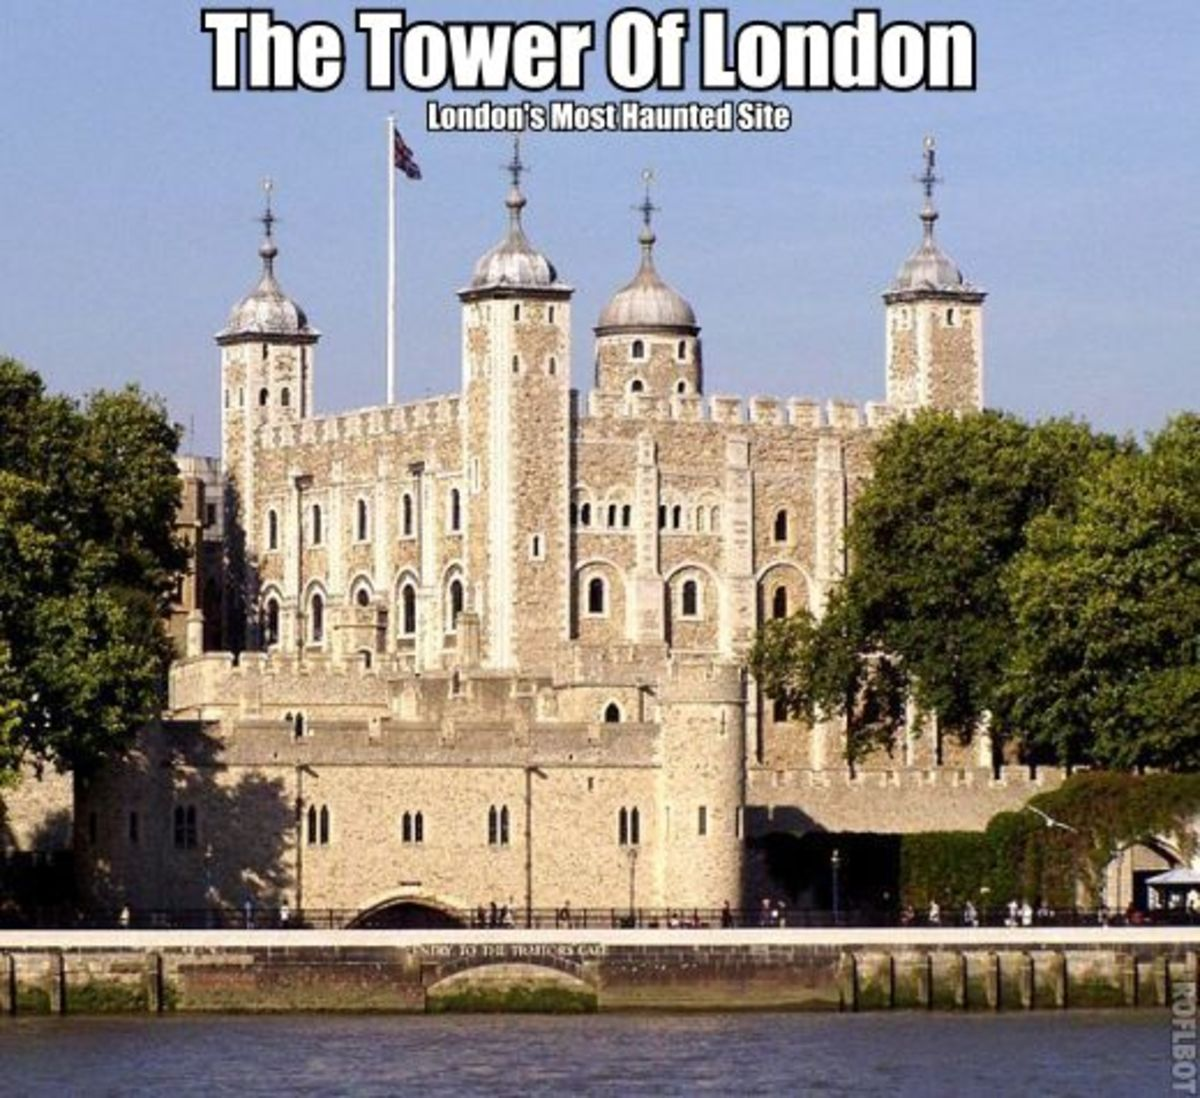 The Tower Of London. It is supposed to be one of London's most haunted sites.